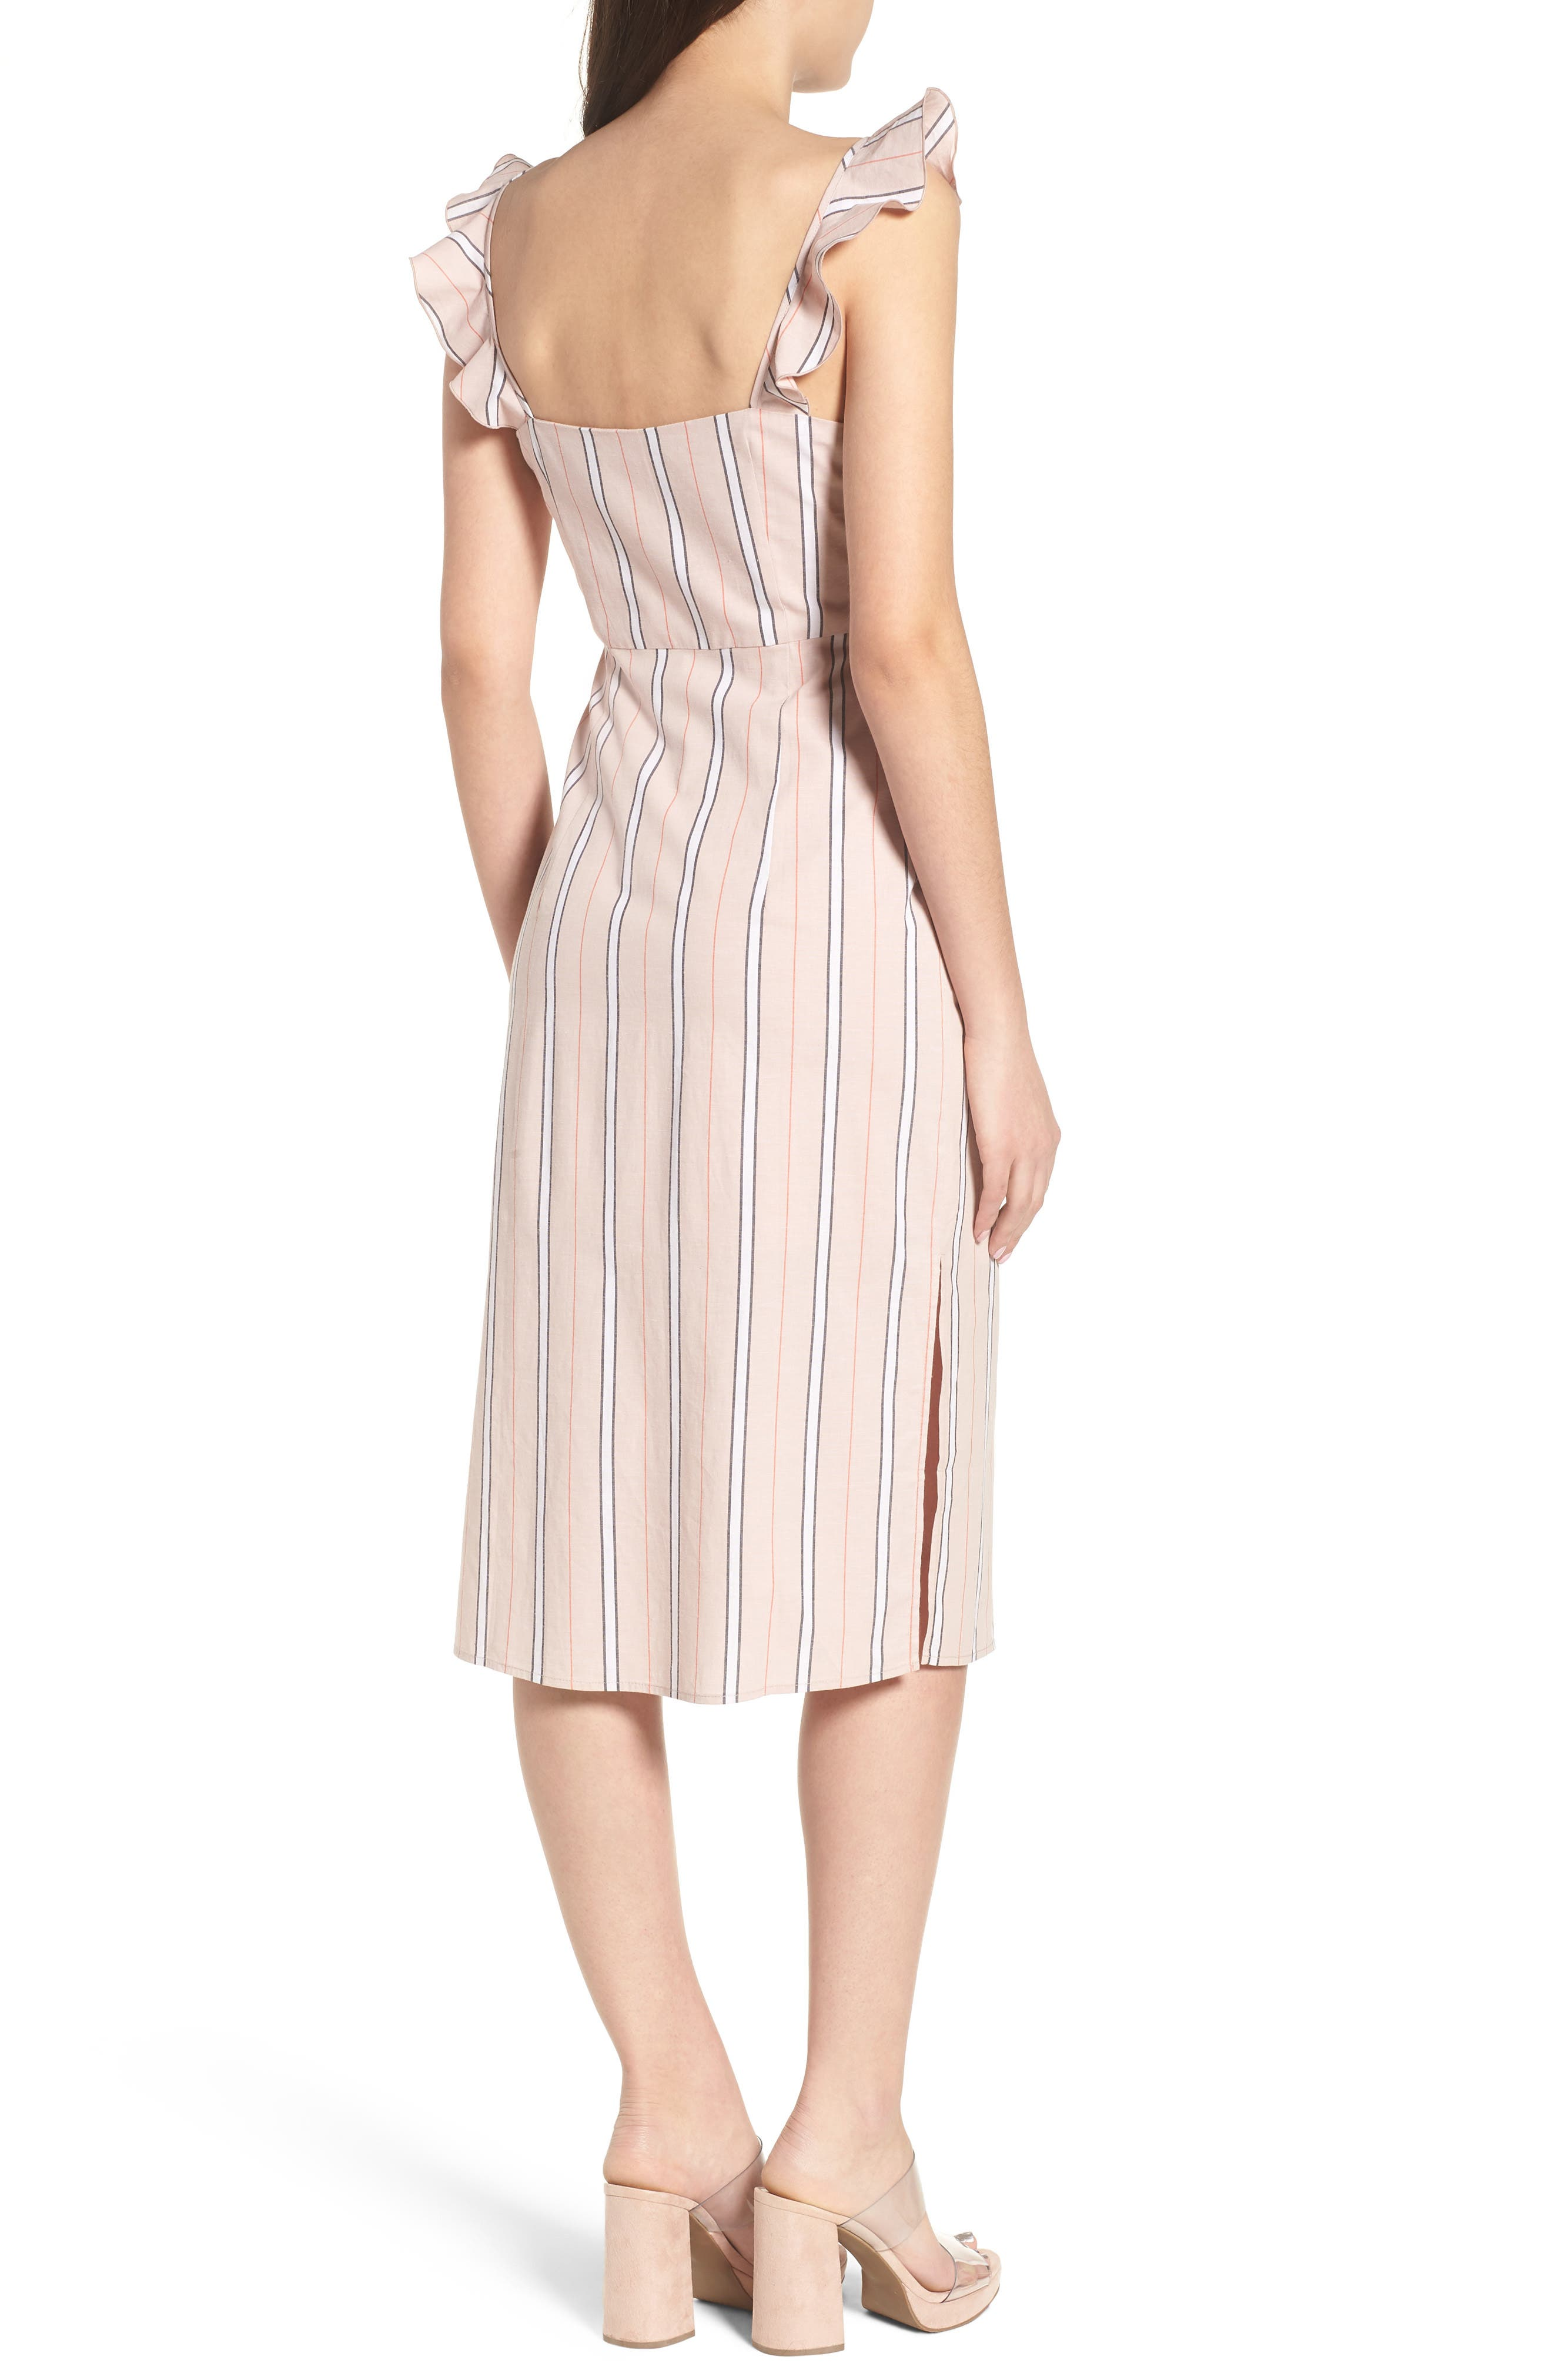 Verona Cutout Midi Dress,                             Alternate thumbnail 2, color,                             Coral Stripe